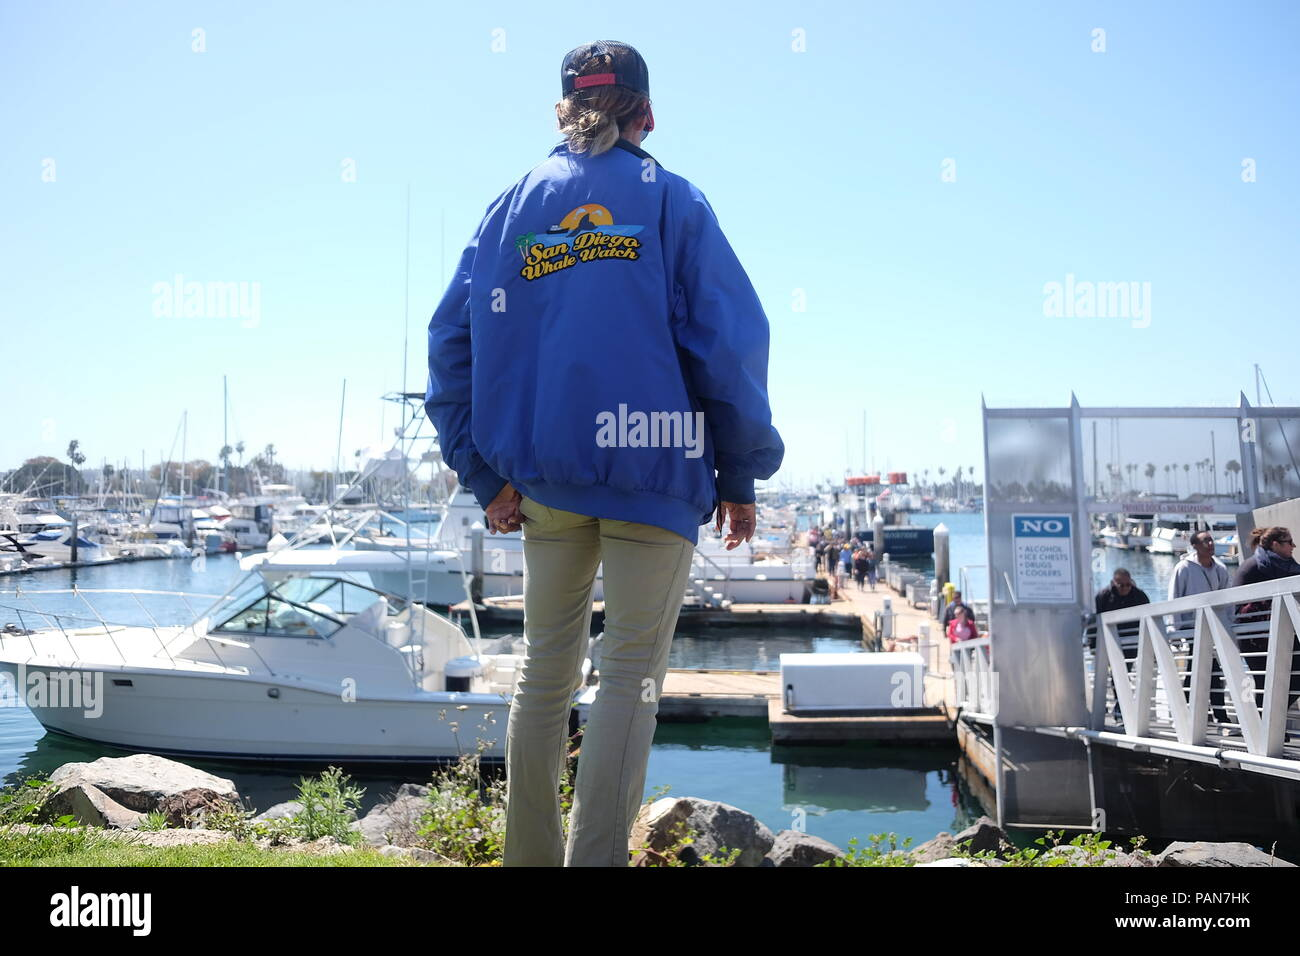 San Diego Whale Watching ready to depart - Stock Image